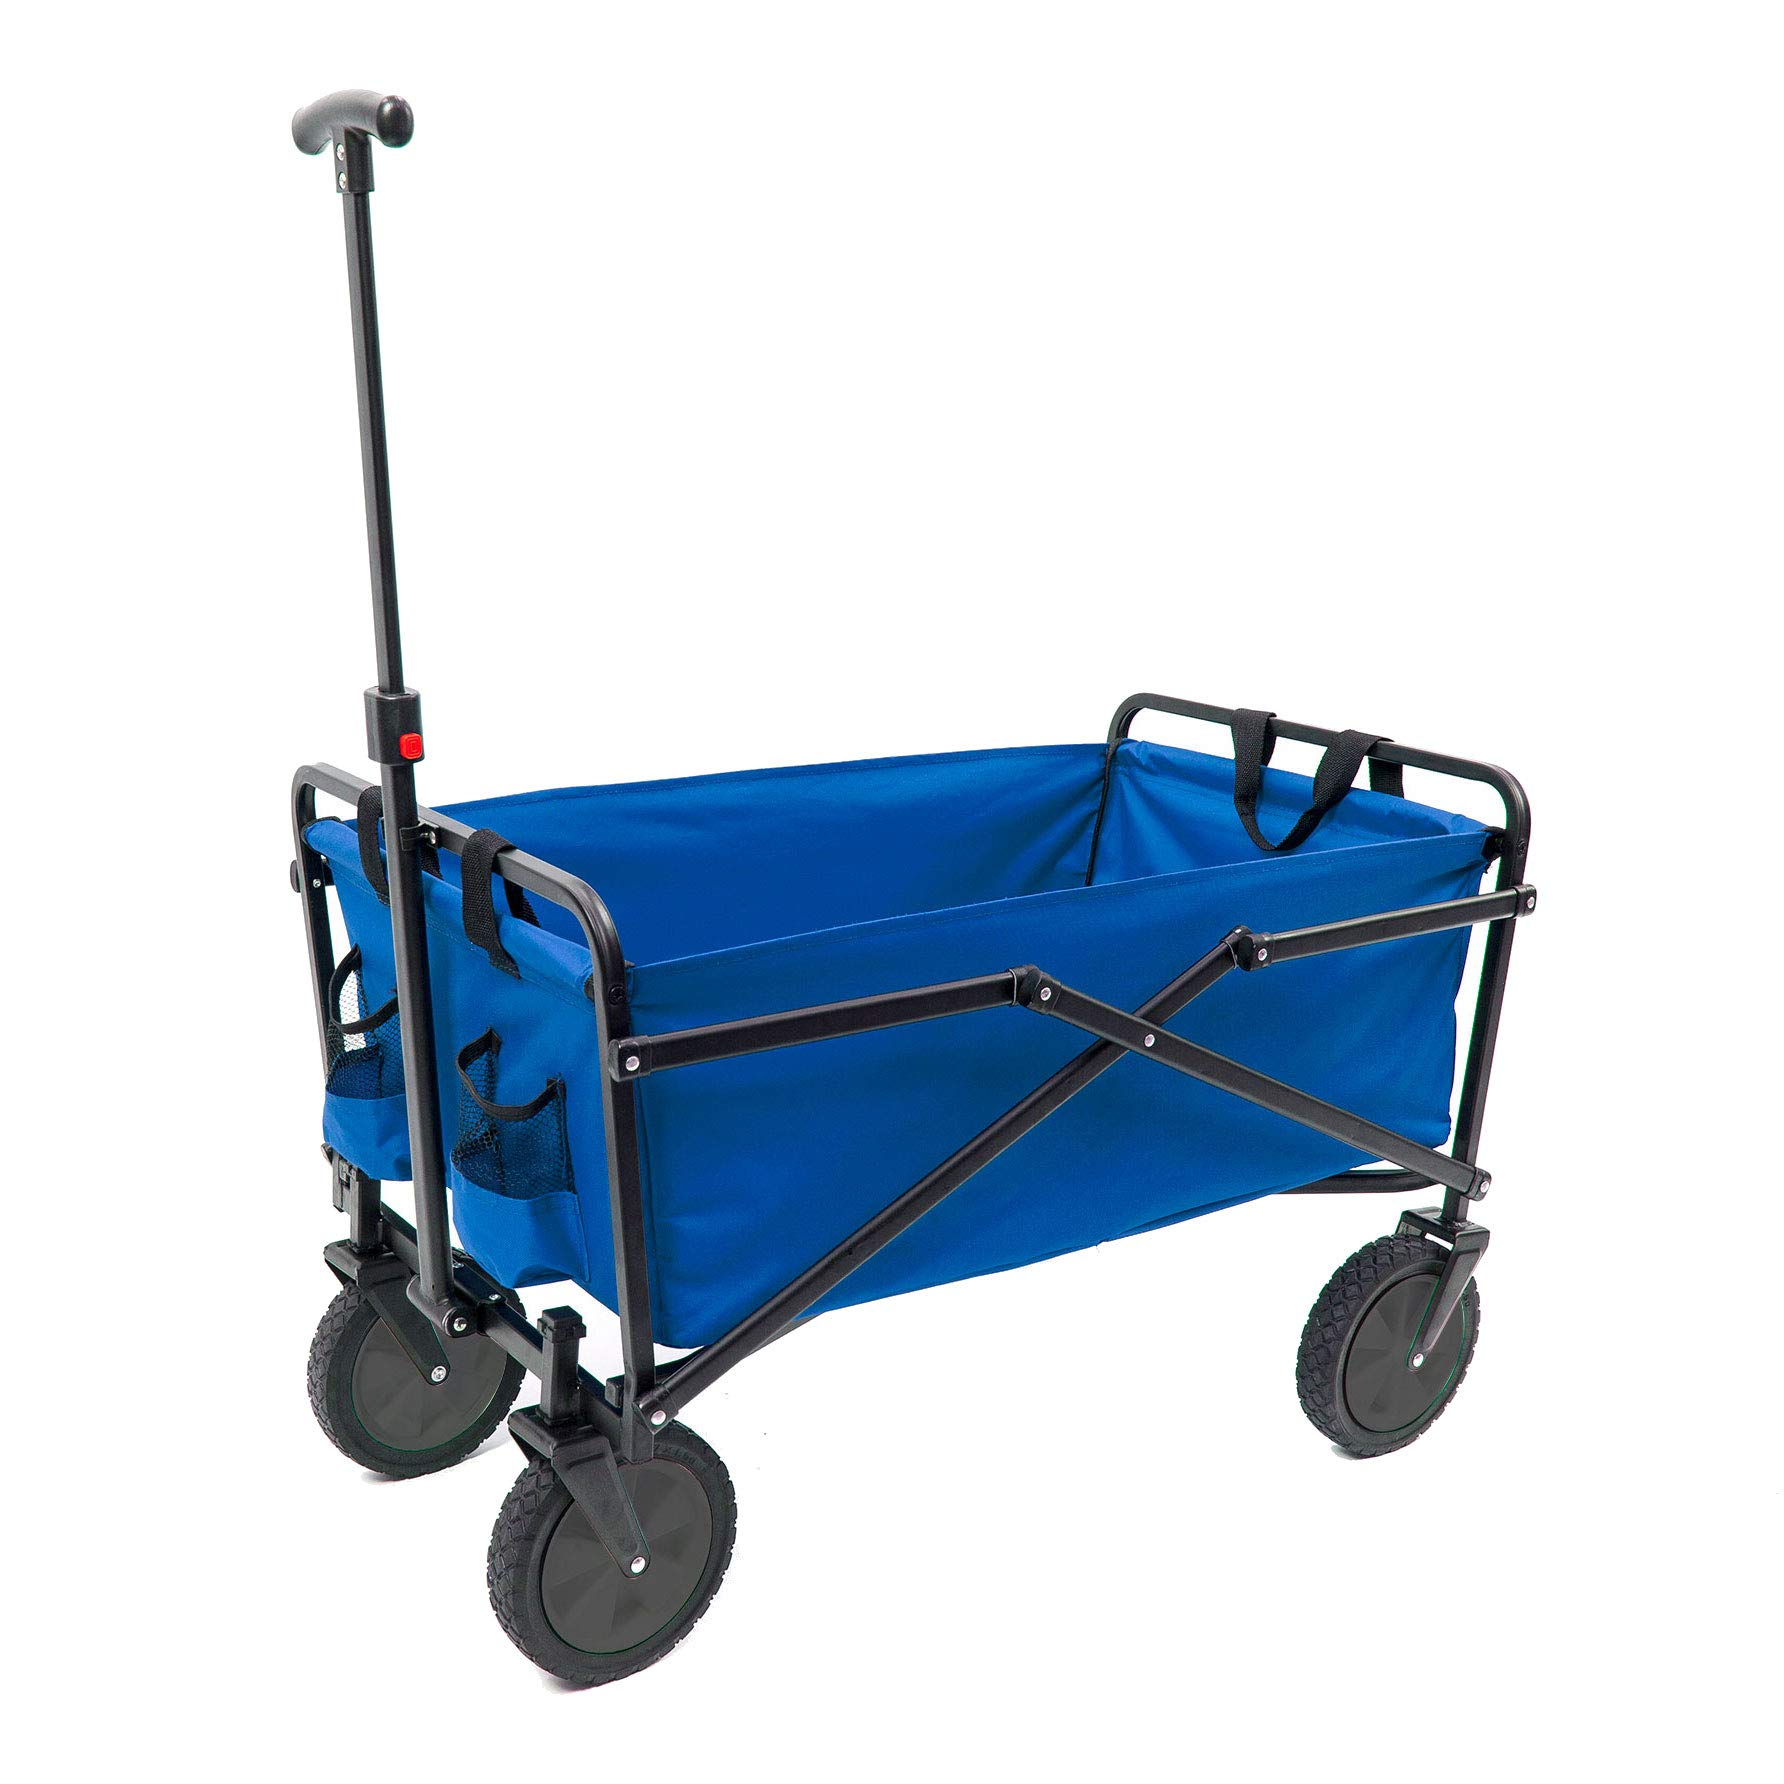 Seina Compact Folding 225-Pound Capacity Utility Cart, Blue by Seina (Image #1)